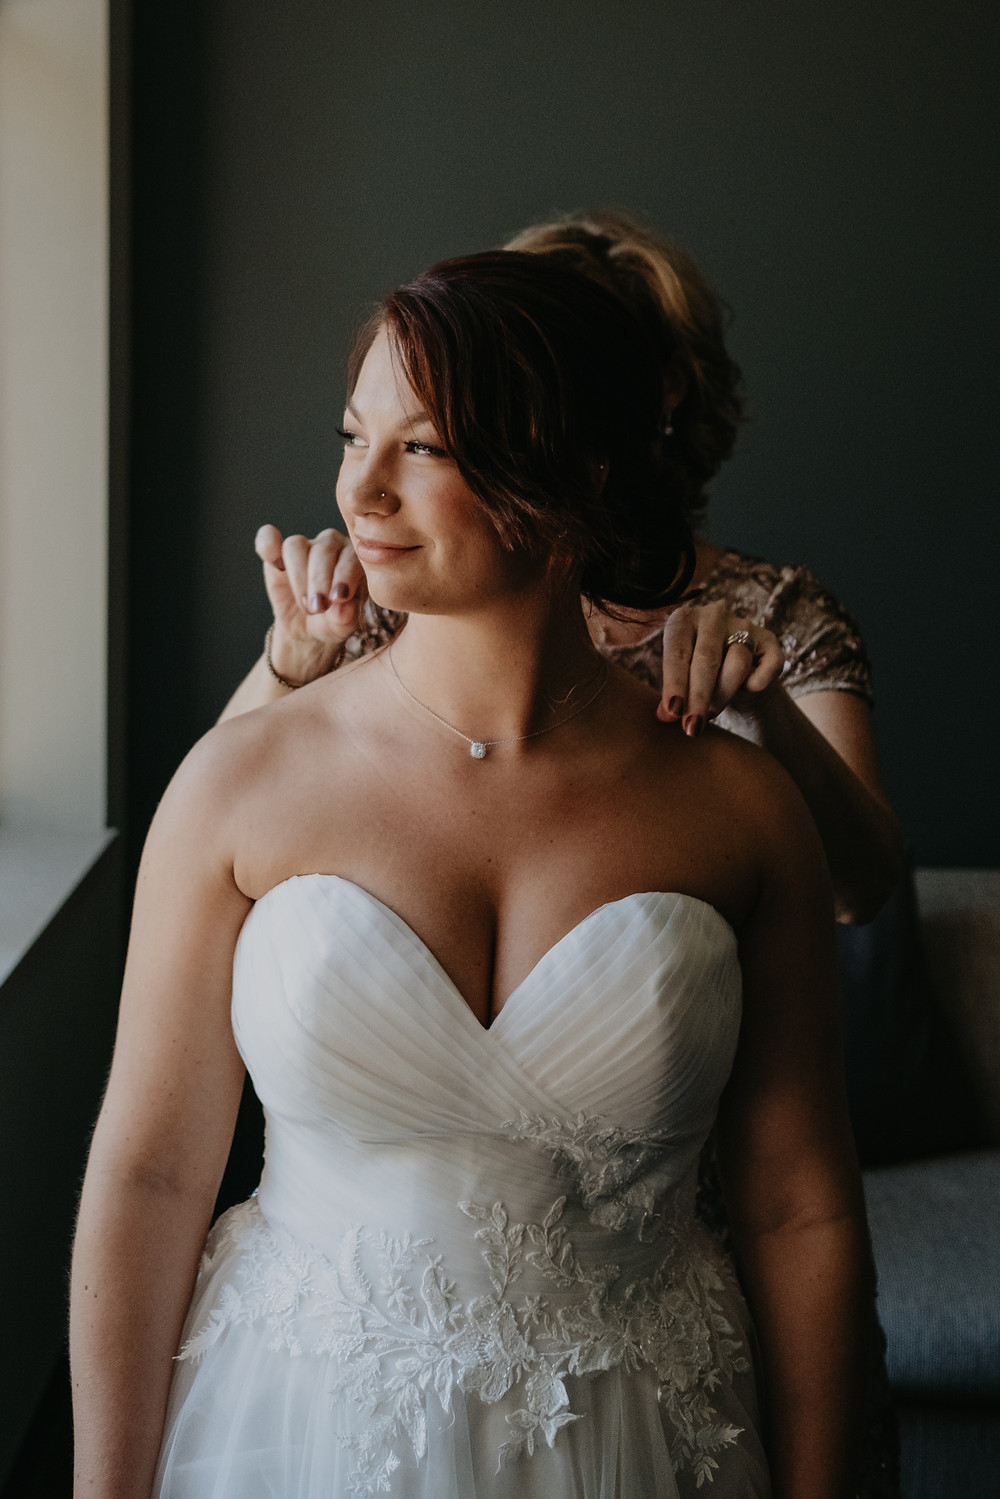 Bride getting dressed on wedding day. Photographed by Nicole Leanne Photography.